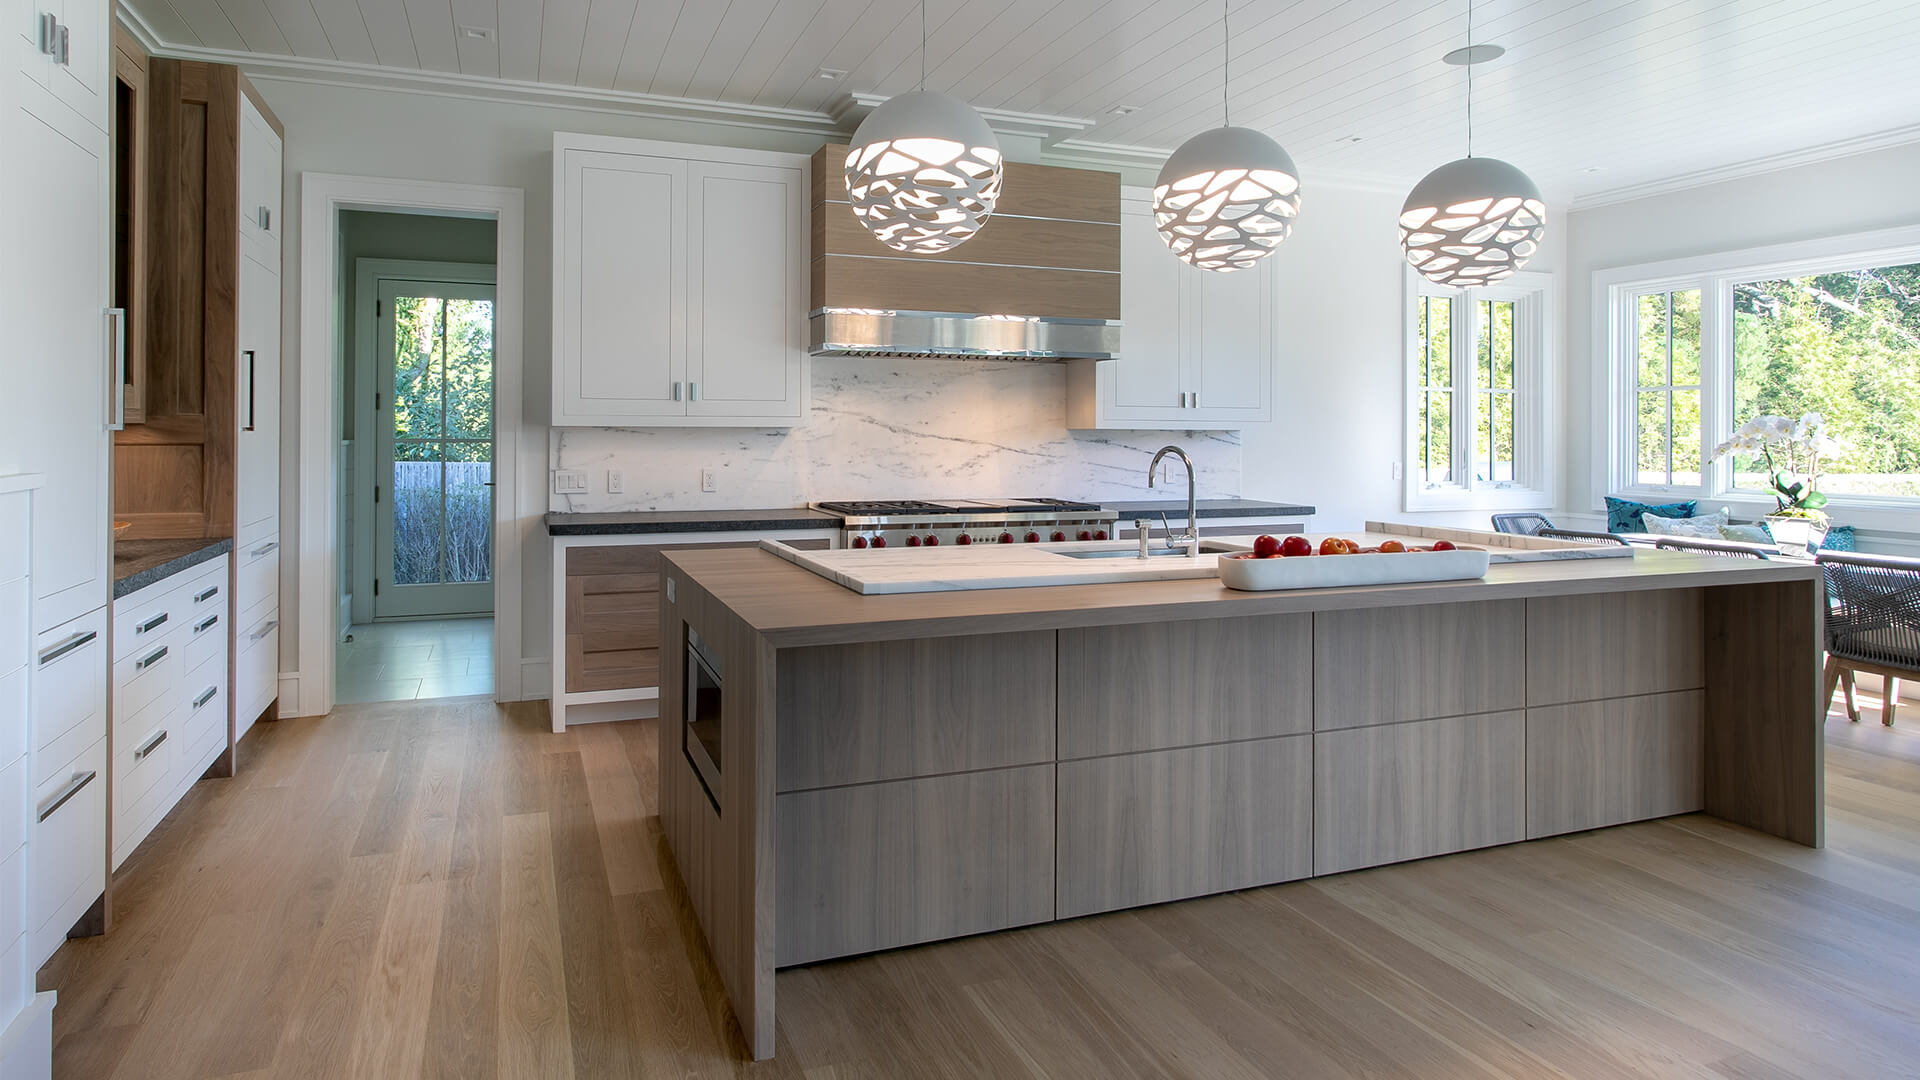 Upscale walnut island with a splash of quart, a custom designed polished nickel /walnut rangehood and a stunning walnut waterfall countertop with microwave inset. Wolf appliances and walnut cabinets with glass panels